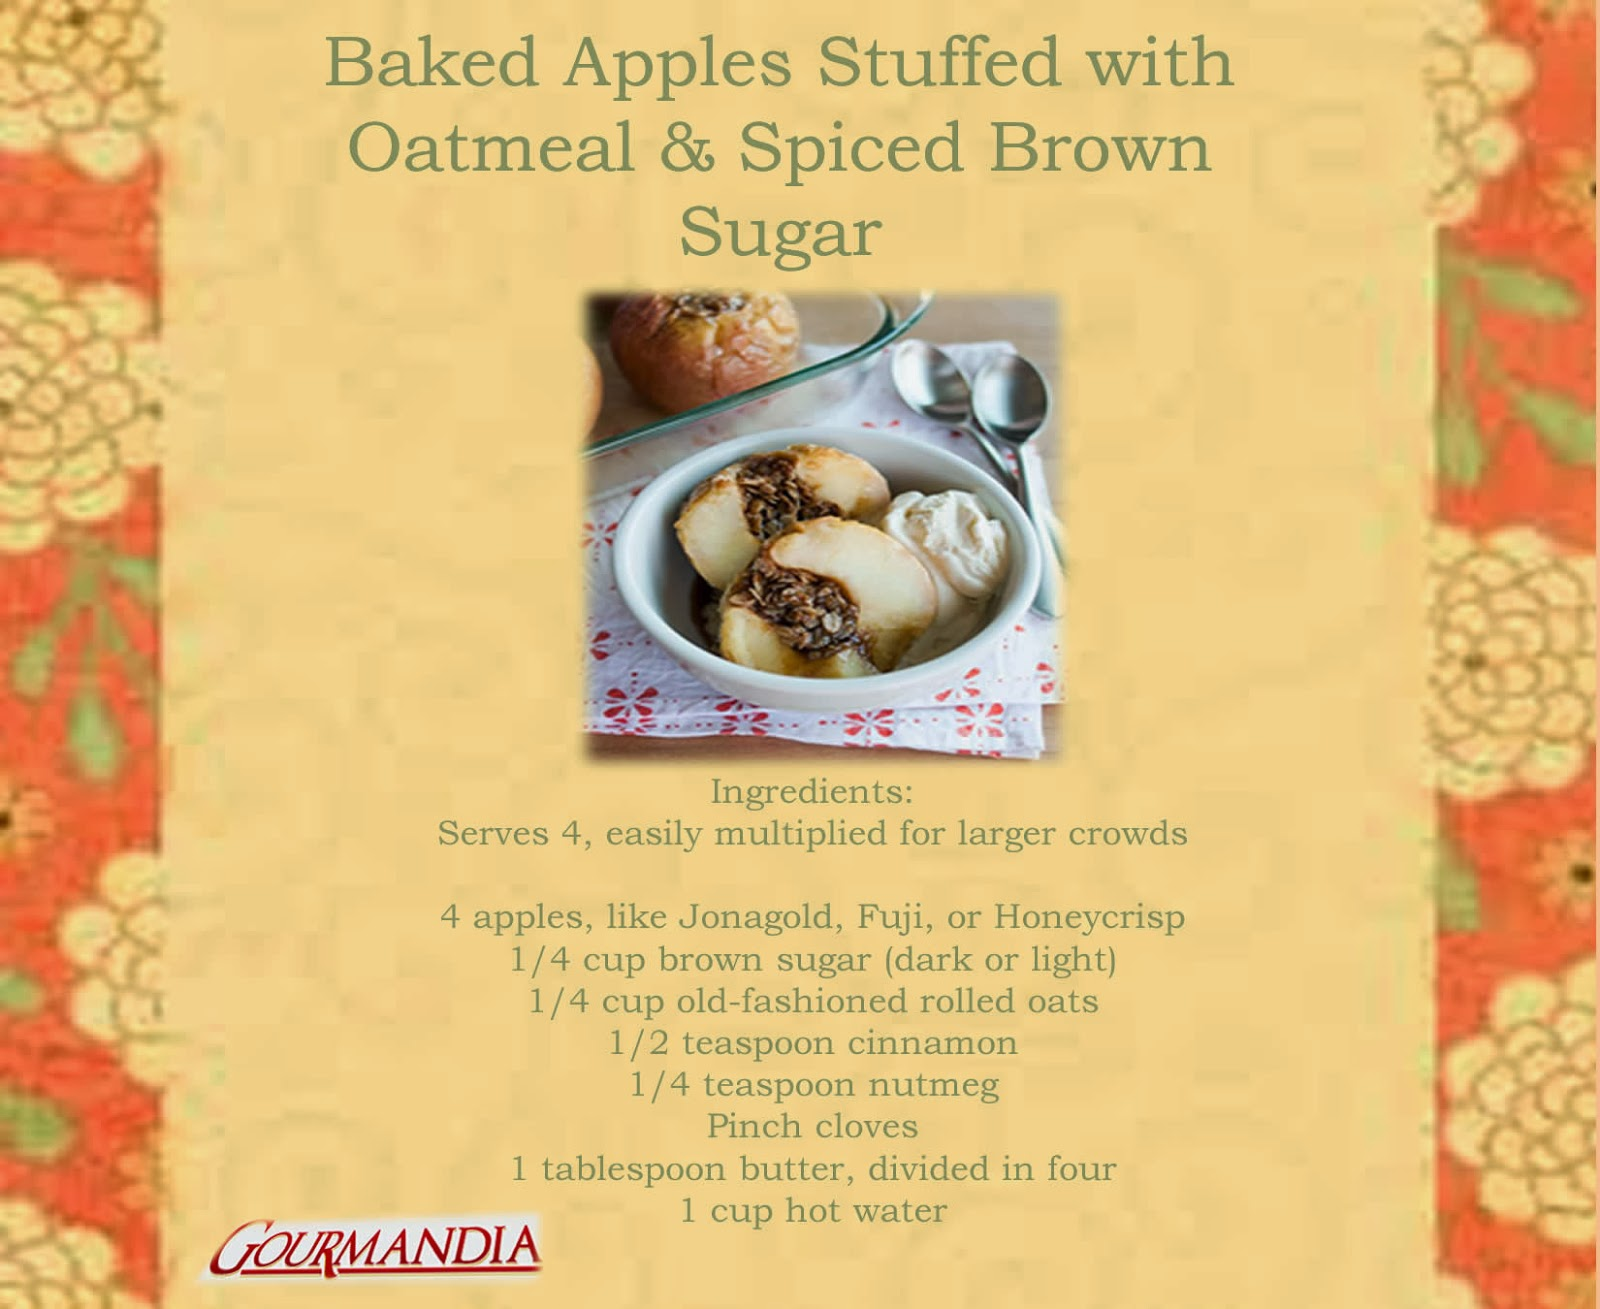 ... for Everyone: Baked Apples Stuffed with Oatmeal & Spiced Brown Sugar